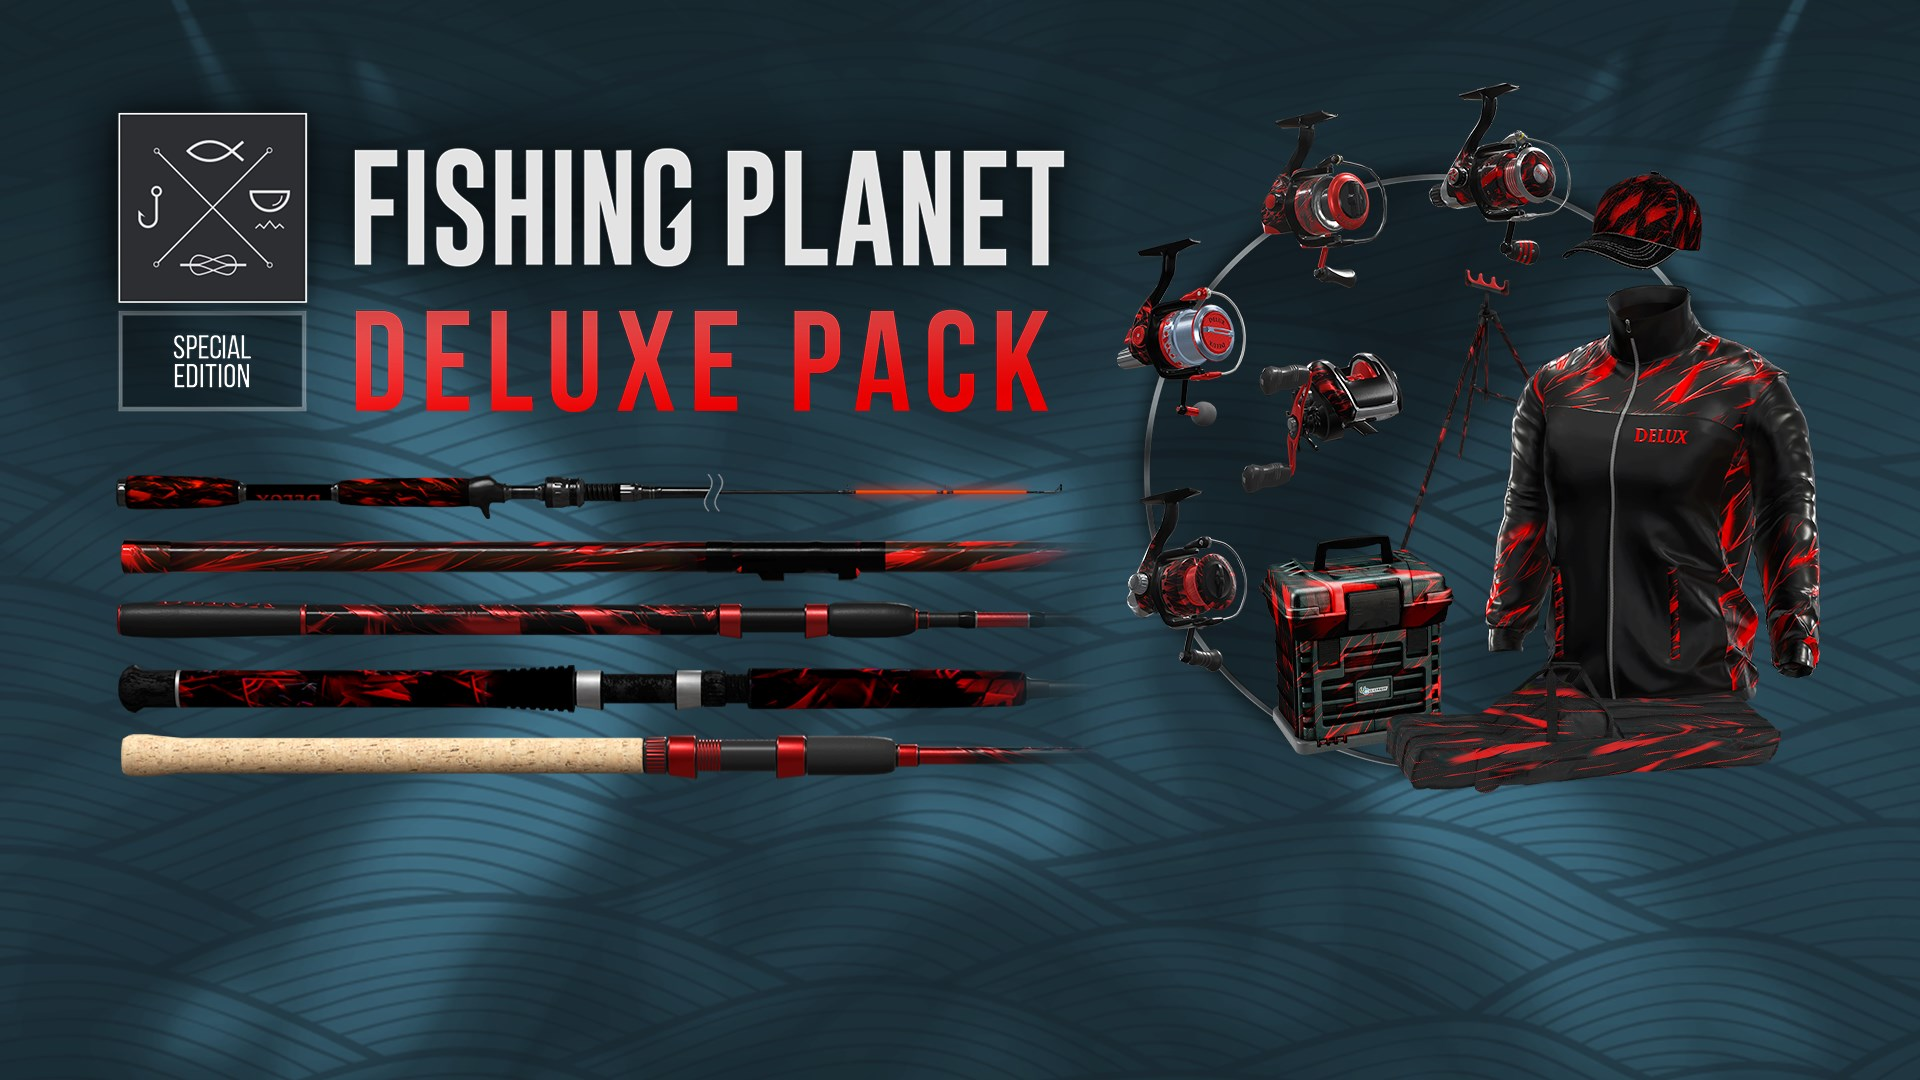 Fishing Planet: Deluxe Pack